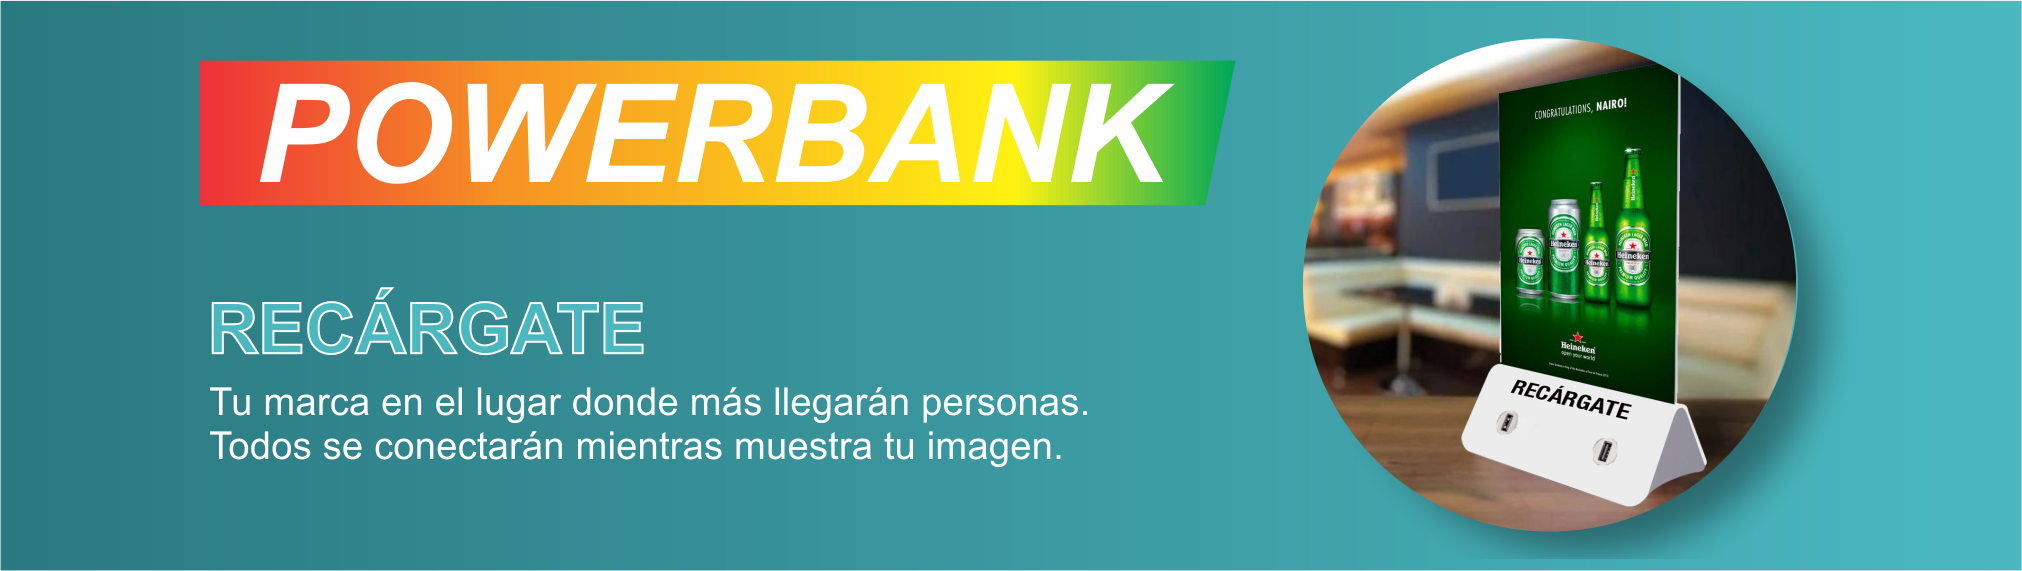 Power Bank - Traemos Innovación